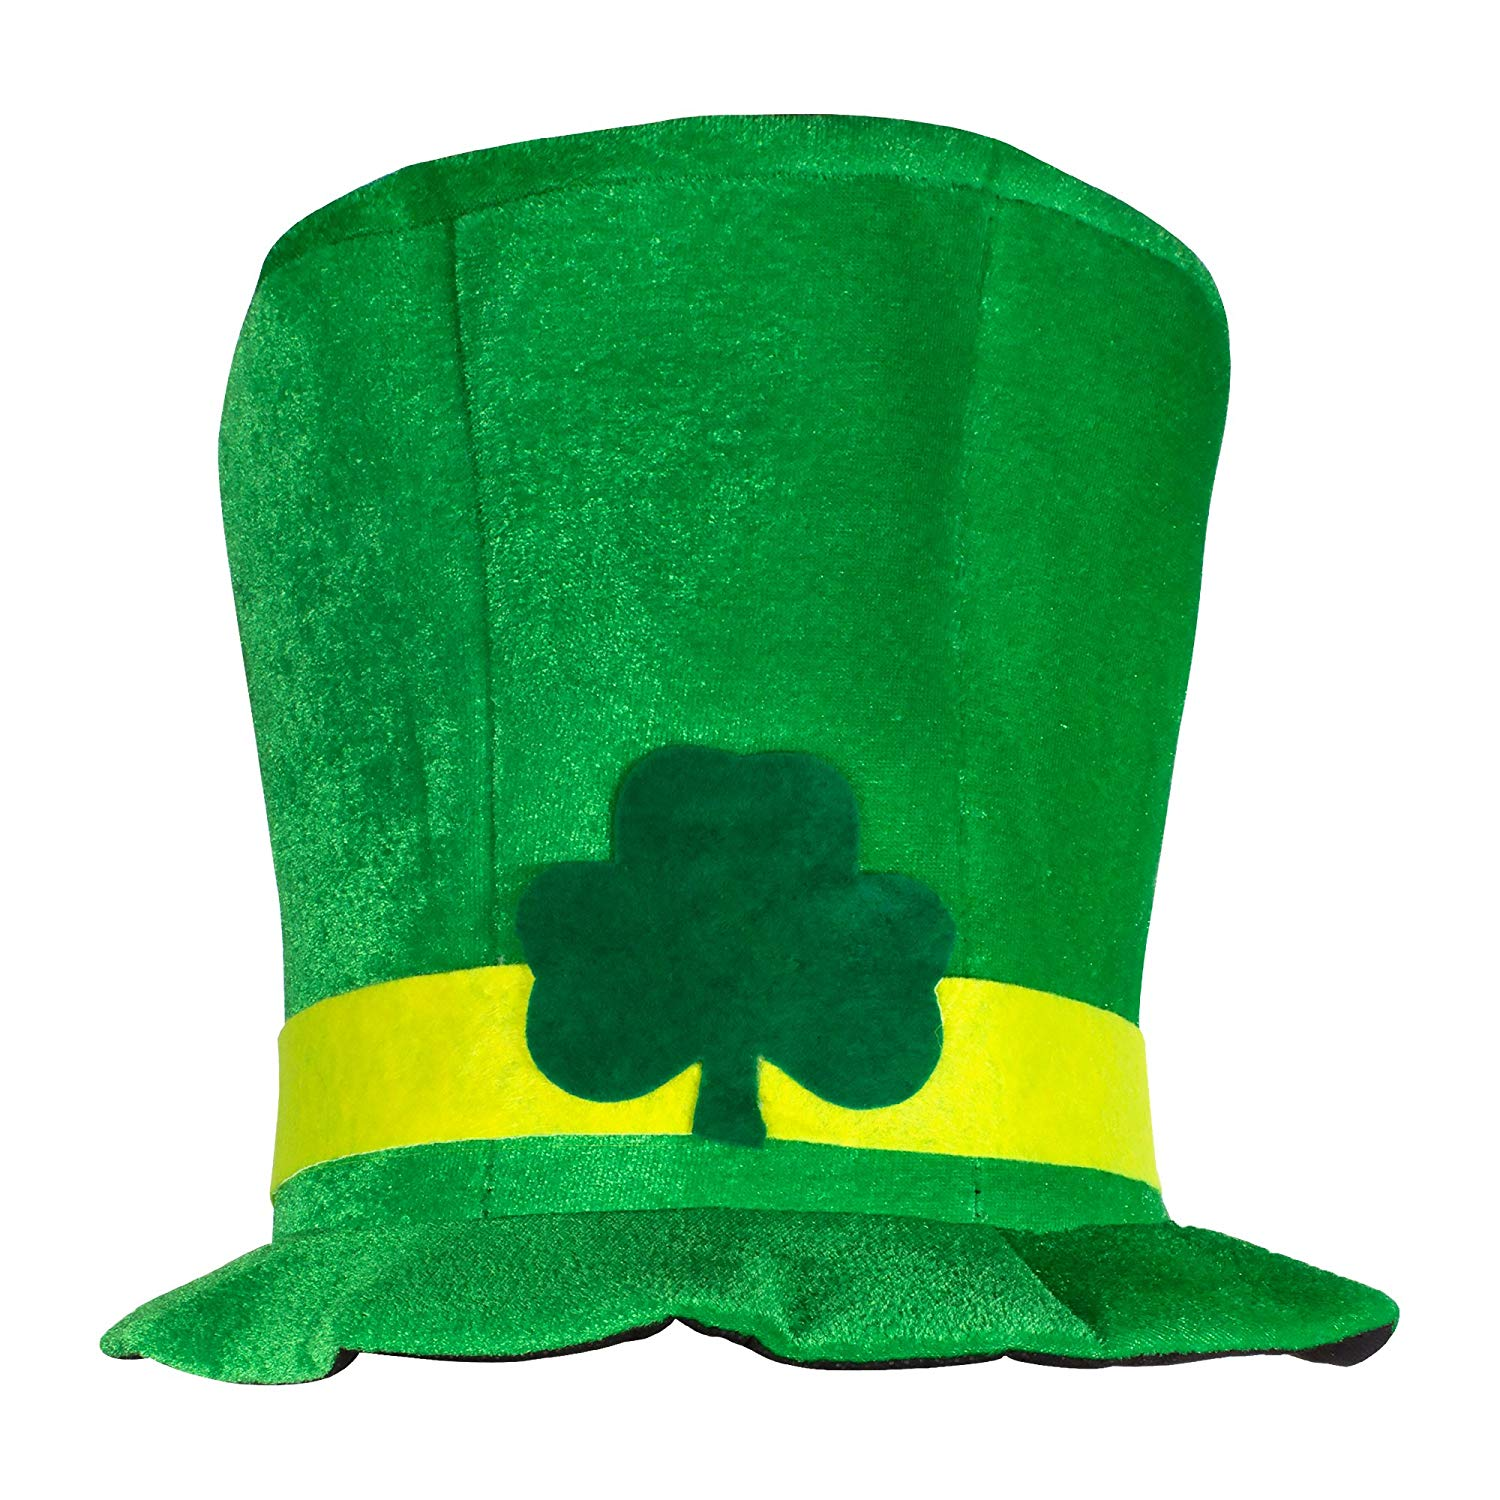 Unisex St. Patricks Day Shamrock Green Velvet Top Hat - 2 Hat Bulk Pack